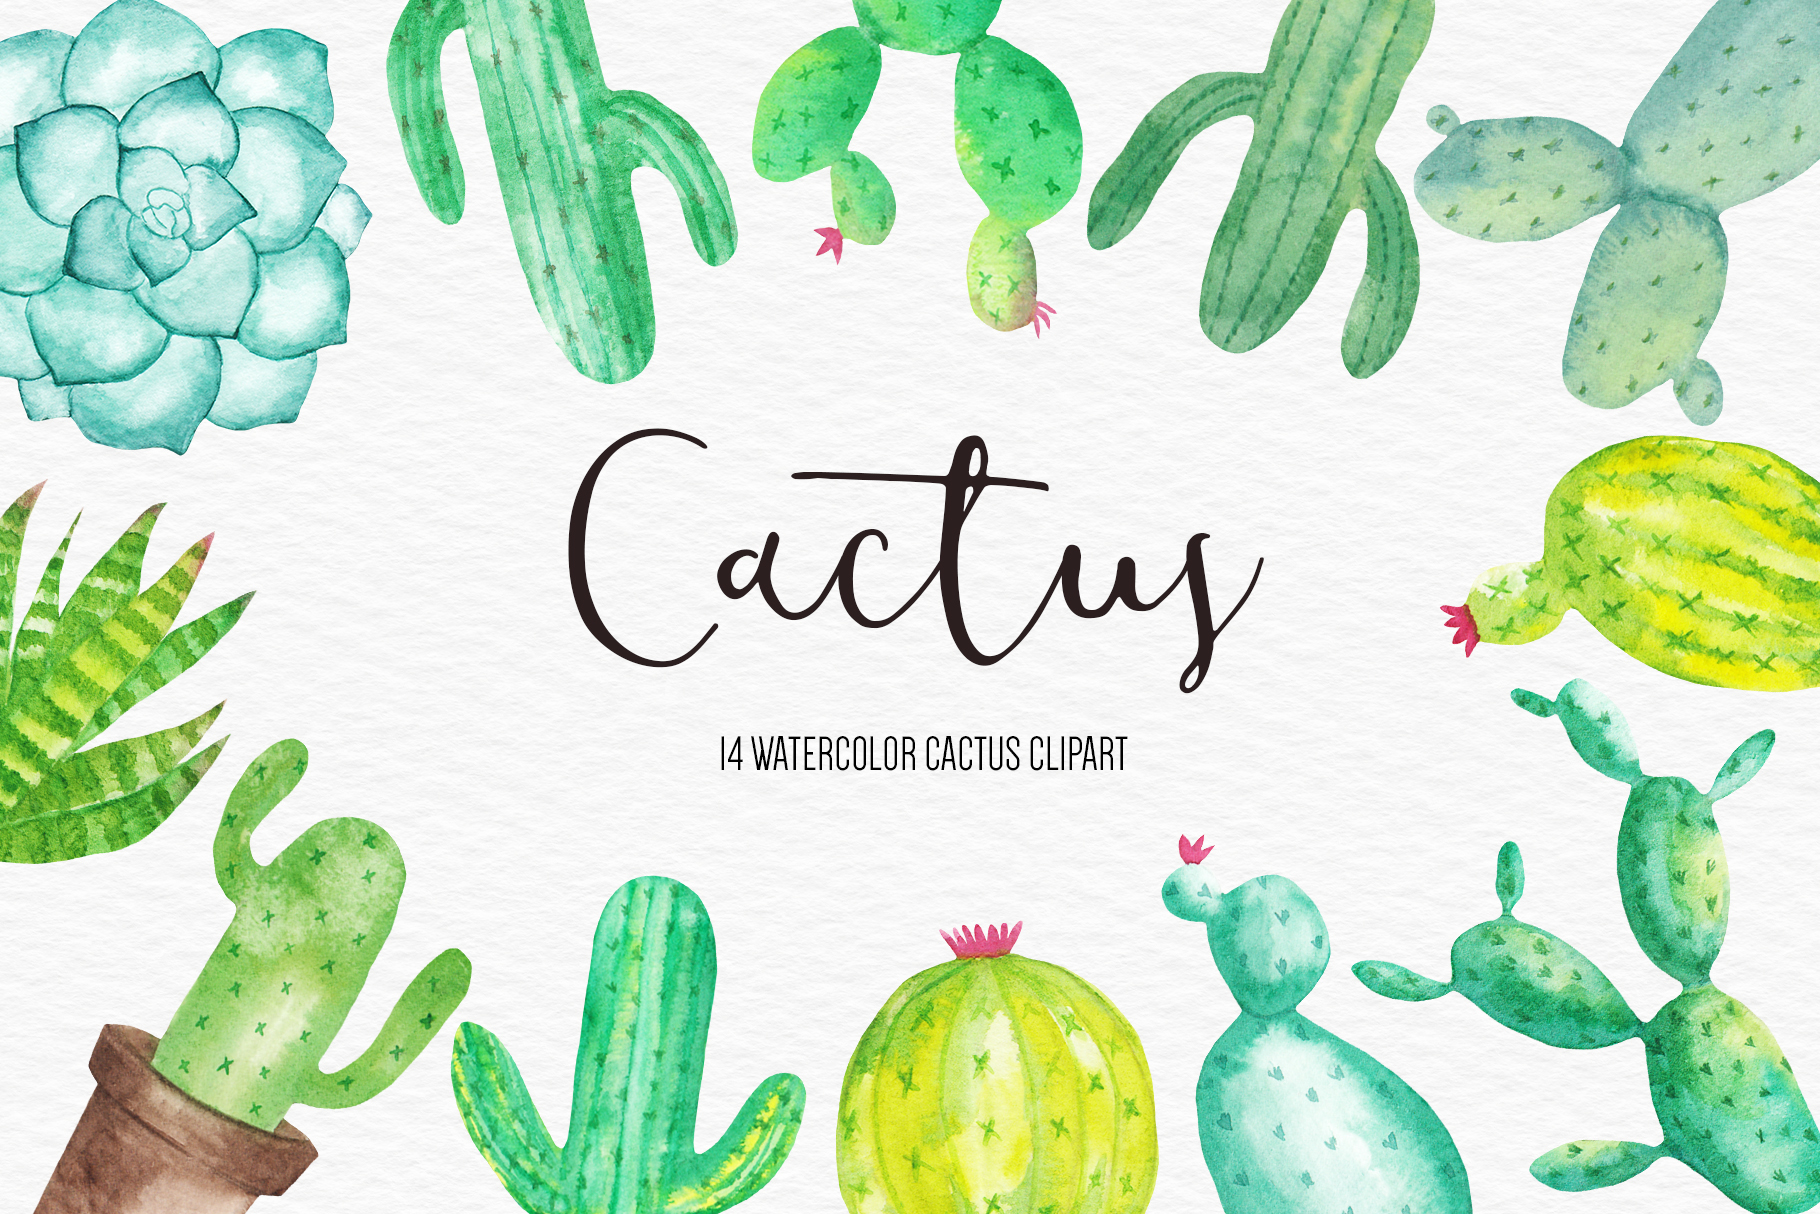 Download Free Watercolor Cactus Clipart Illustration Graphic By Bonadesigns for Cricut Explore, Silhouette and other cutting machines.